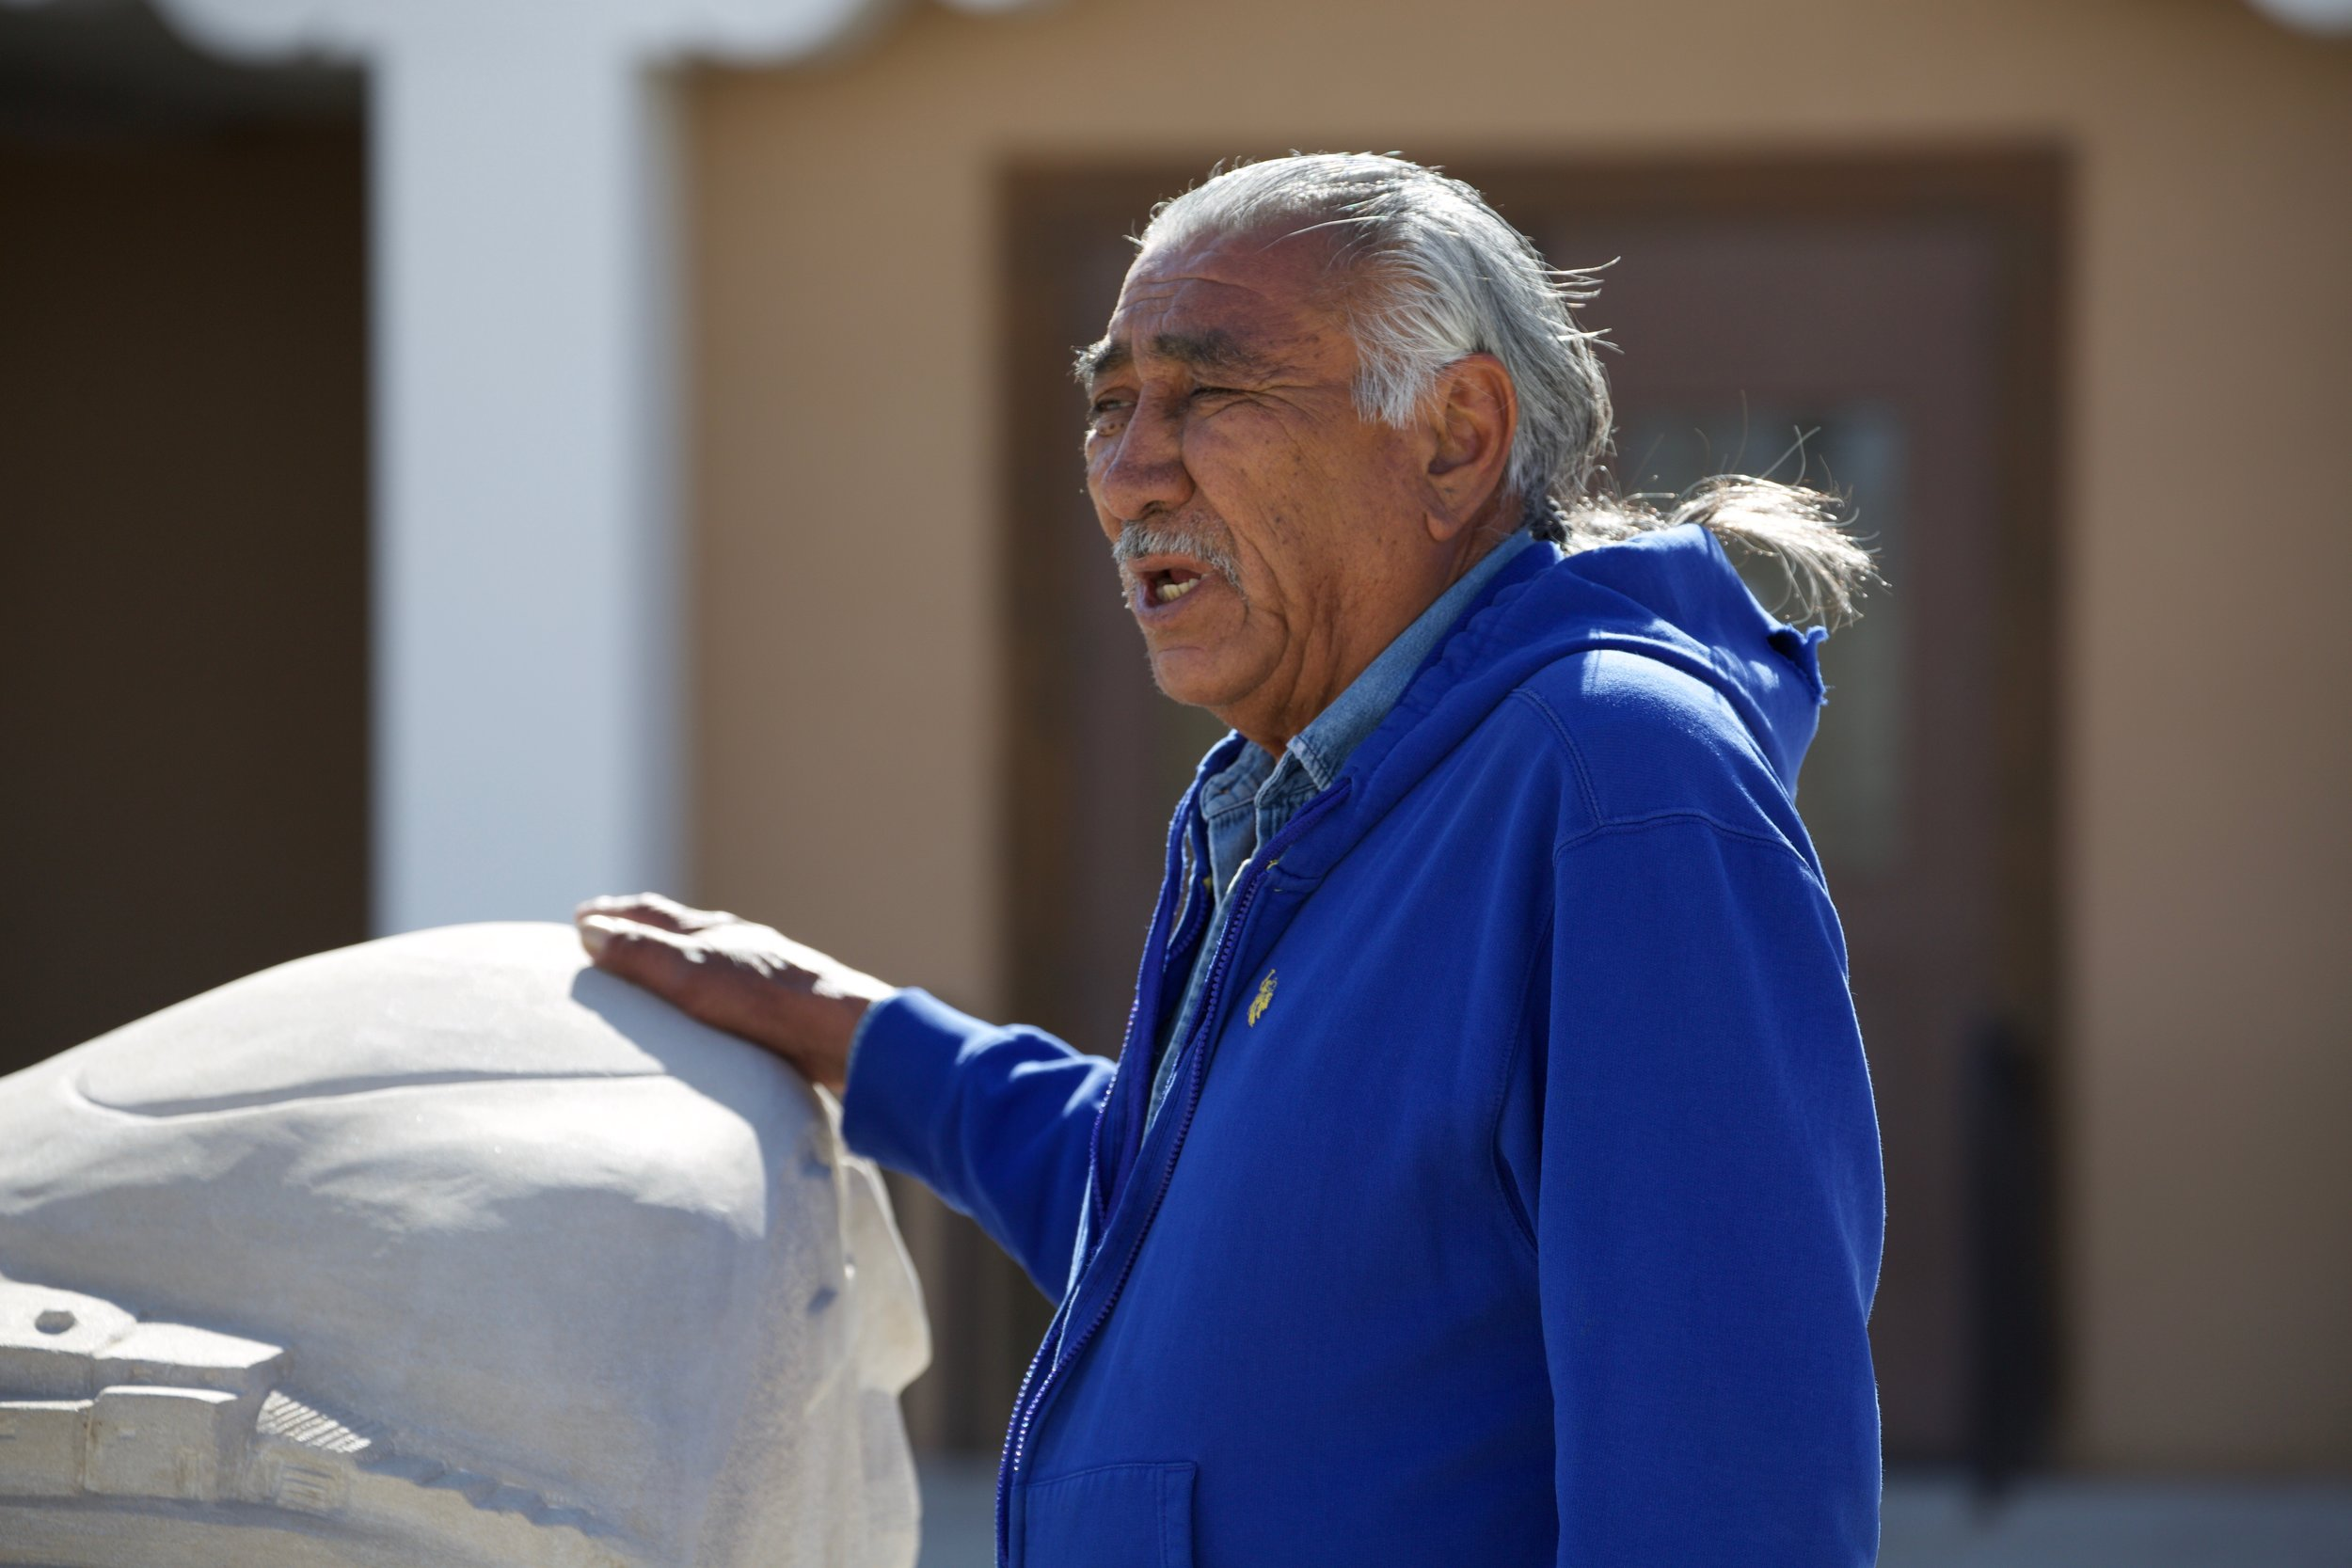 John Suazo explaining the story behind his sculpture at the Taos courthouse.